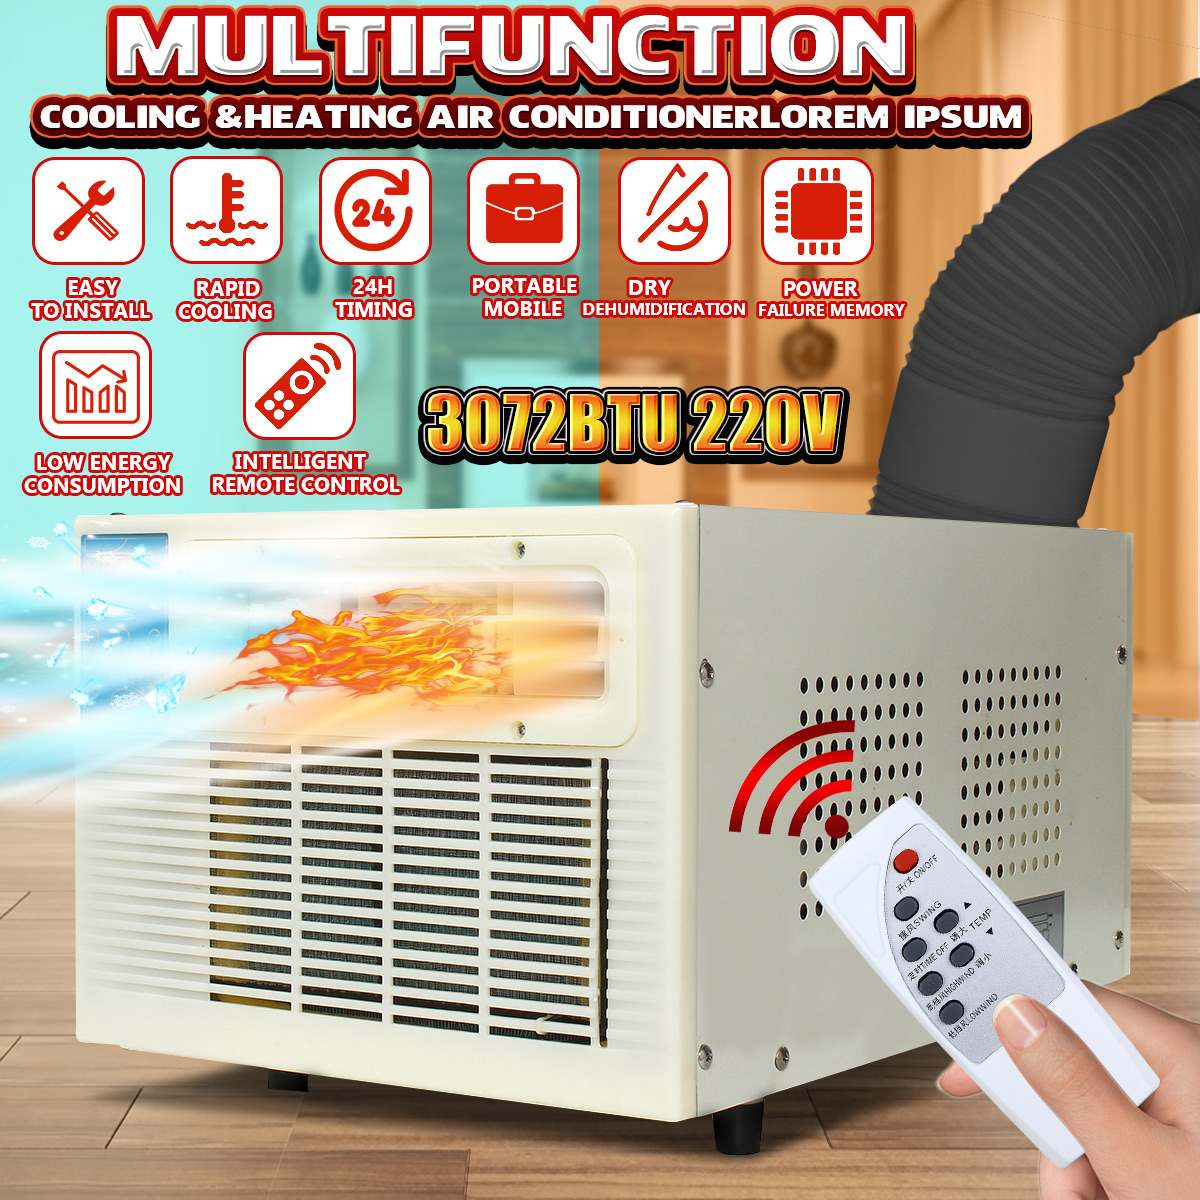 Air Conditioner 3072 BTU 220V Household Portable Heater Window Air Conditioner Cooling Heating Cold/Heat Dual Use Dehumidifier